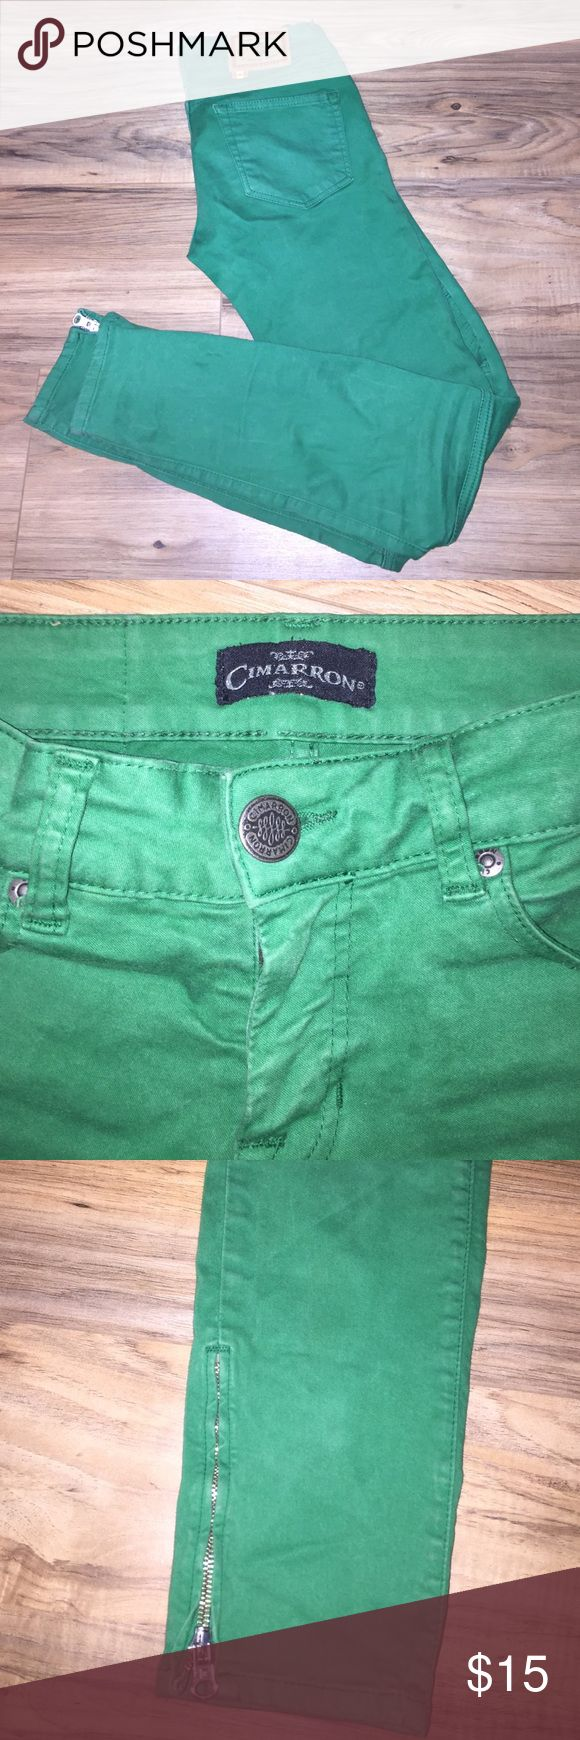 Green Cimarron designer jeans Way cute green Cimarron jeans! Cool trendy patter knee and zipper at the ankle. Great condition. My wonderful hard working mother has made many sacrifices to buy me a ticket to go visit my family that I only see once a year. So I don't make a lot of money but want to be able to get her and the rest of my family quality gifts so the next couple posts will be things that I love and hope you will too. I will happily accept reasonable offers. Wish me luck guys…